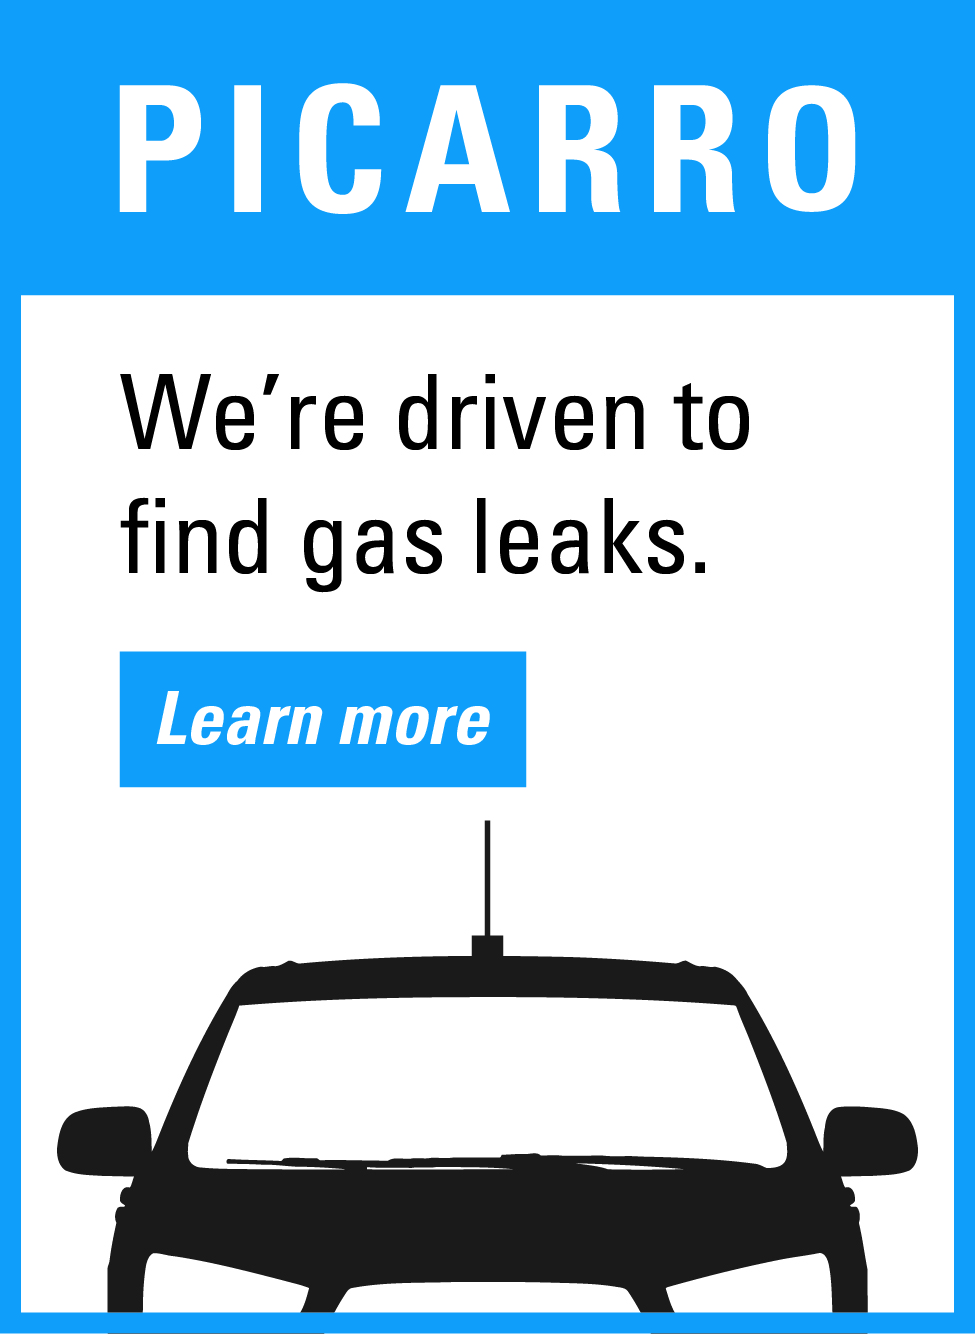 Picarro Leak Detection